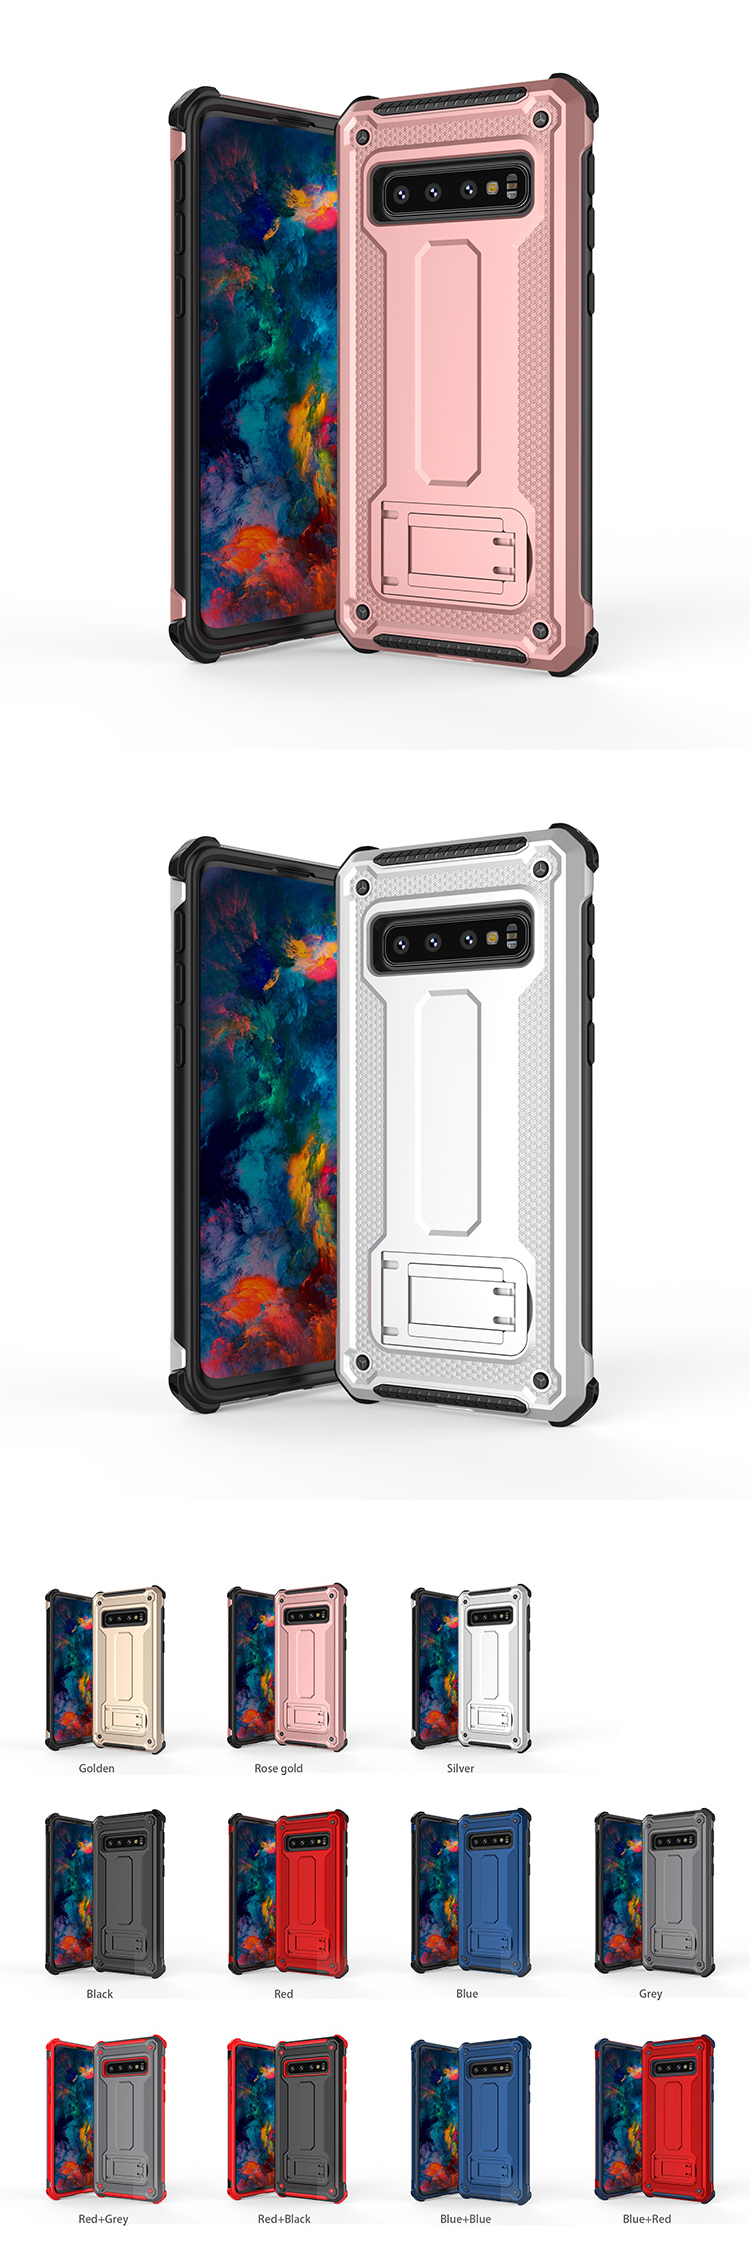 High quality 2 in 1 rugged shockproof armor phone case cover for samsung galaxy s8 / s9 / s10